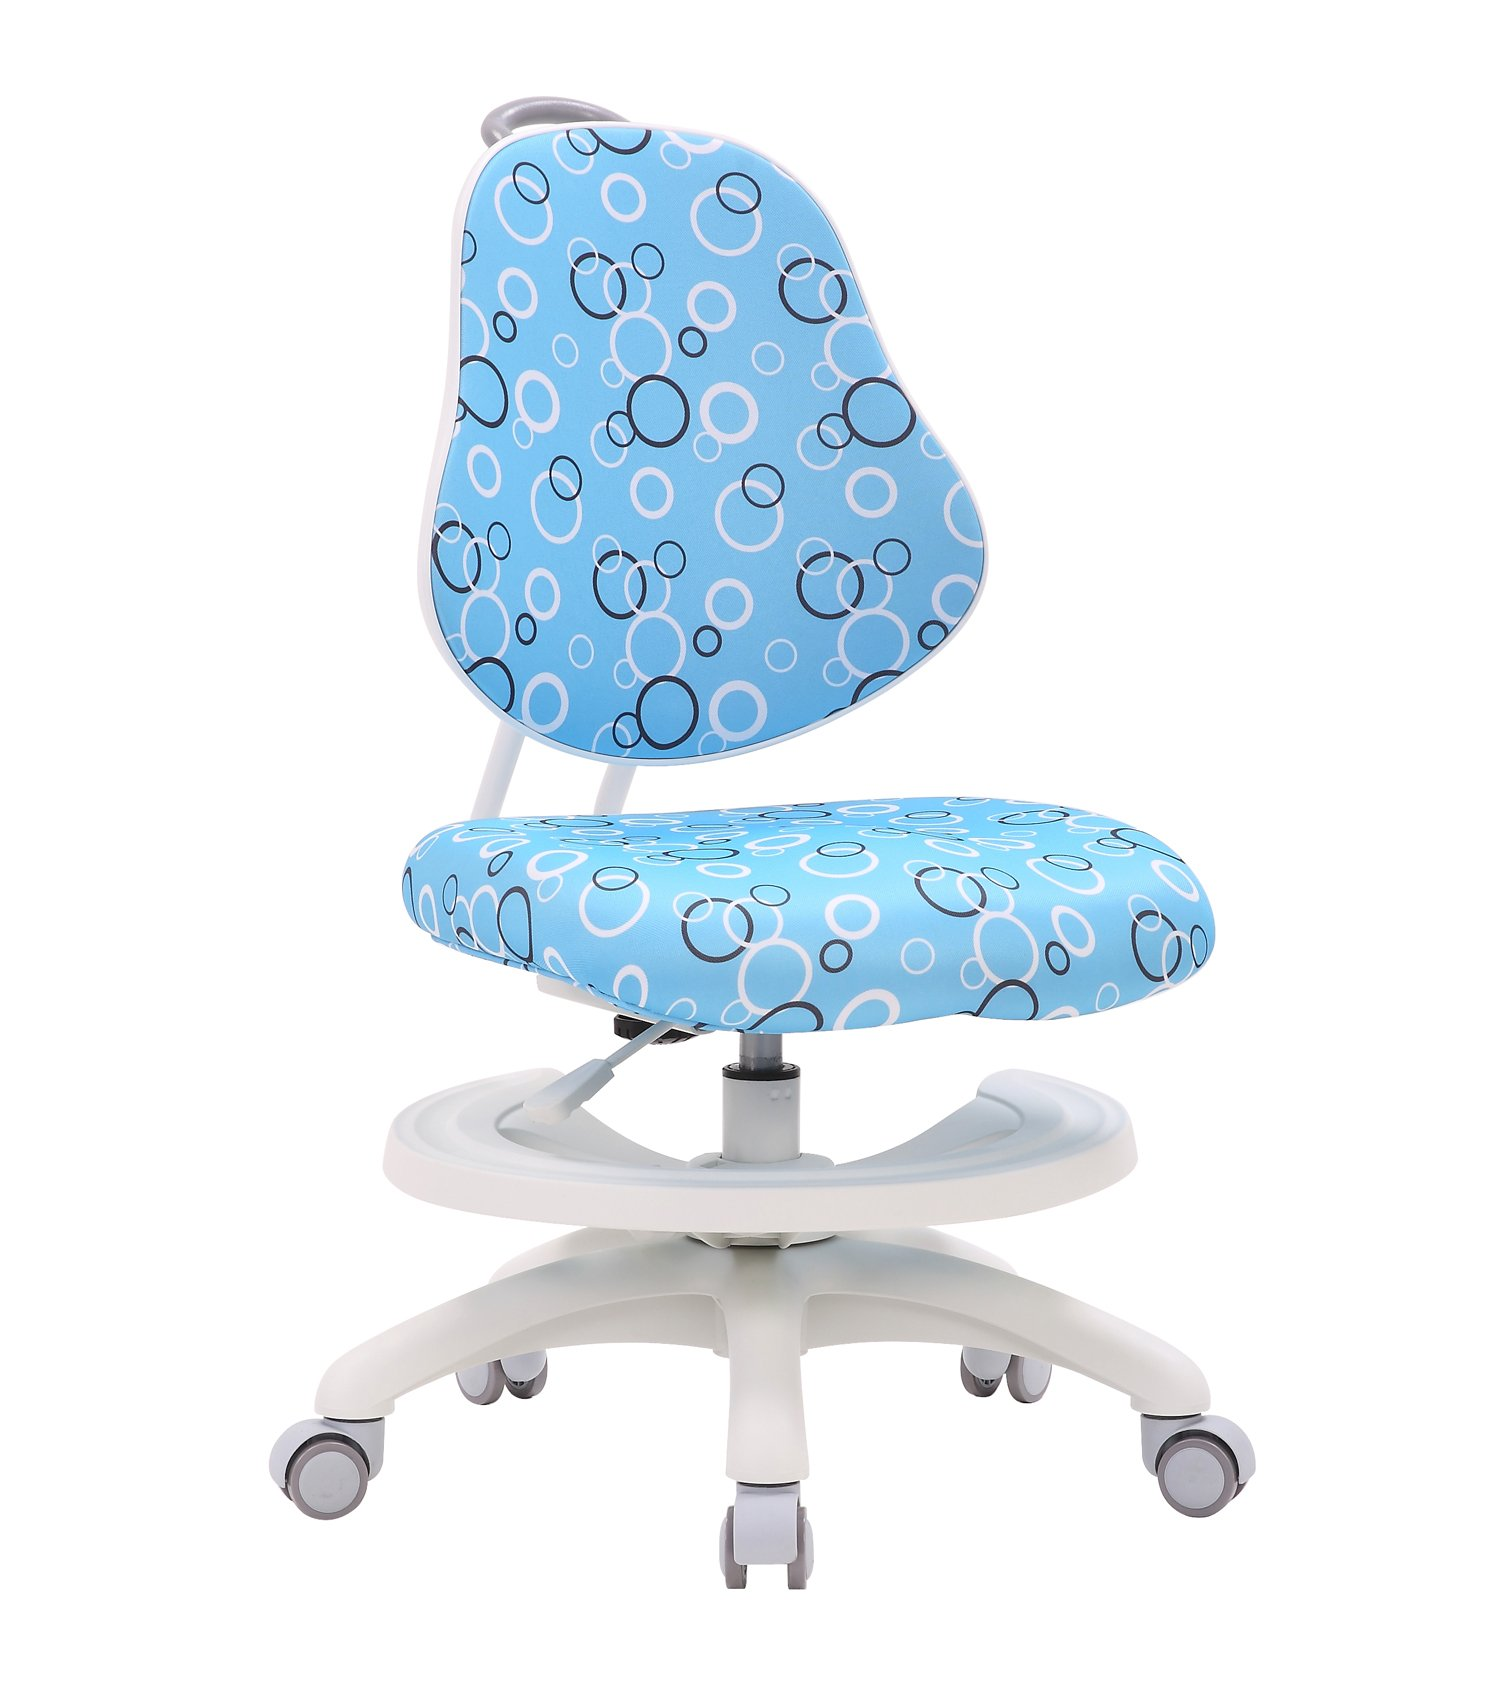 Kids Desk Chair, Big Baby Mid Back Adjustable Home Office Chair, Student Ergonomic Armless Chair, Swivel Task Computer Chair with Foot Rest 360 Degree, Blue